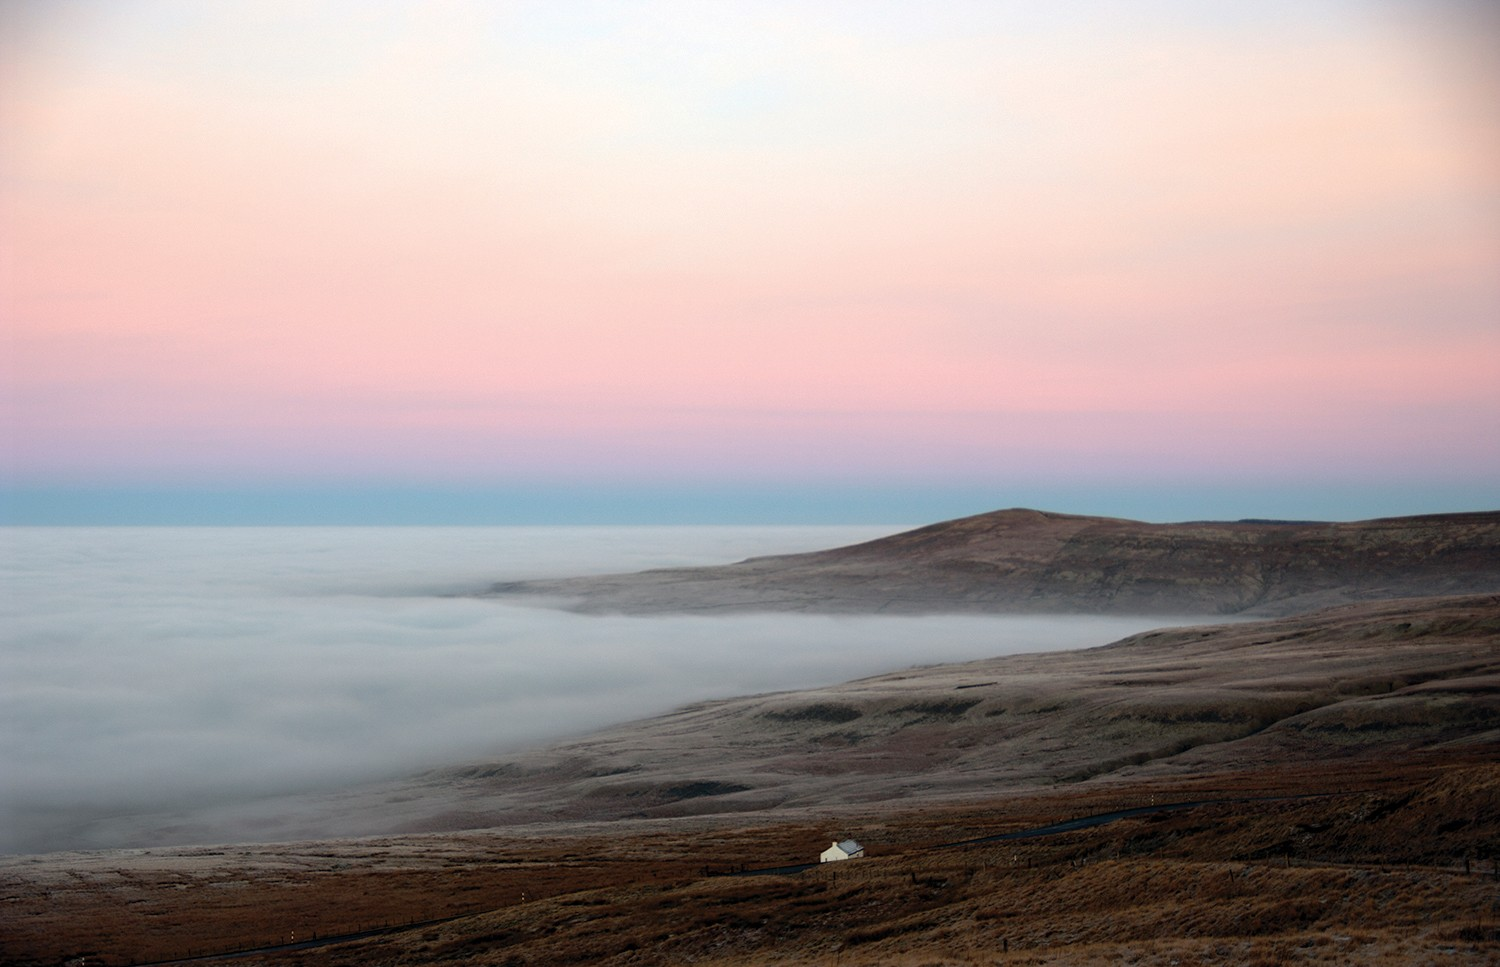 A landscape photo with fog and warm-colored, pink and orange sky.